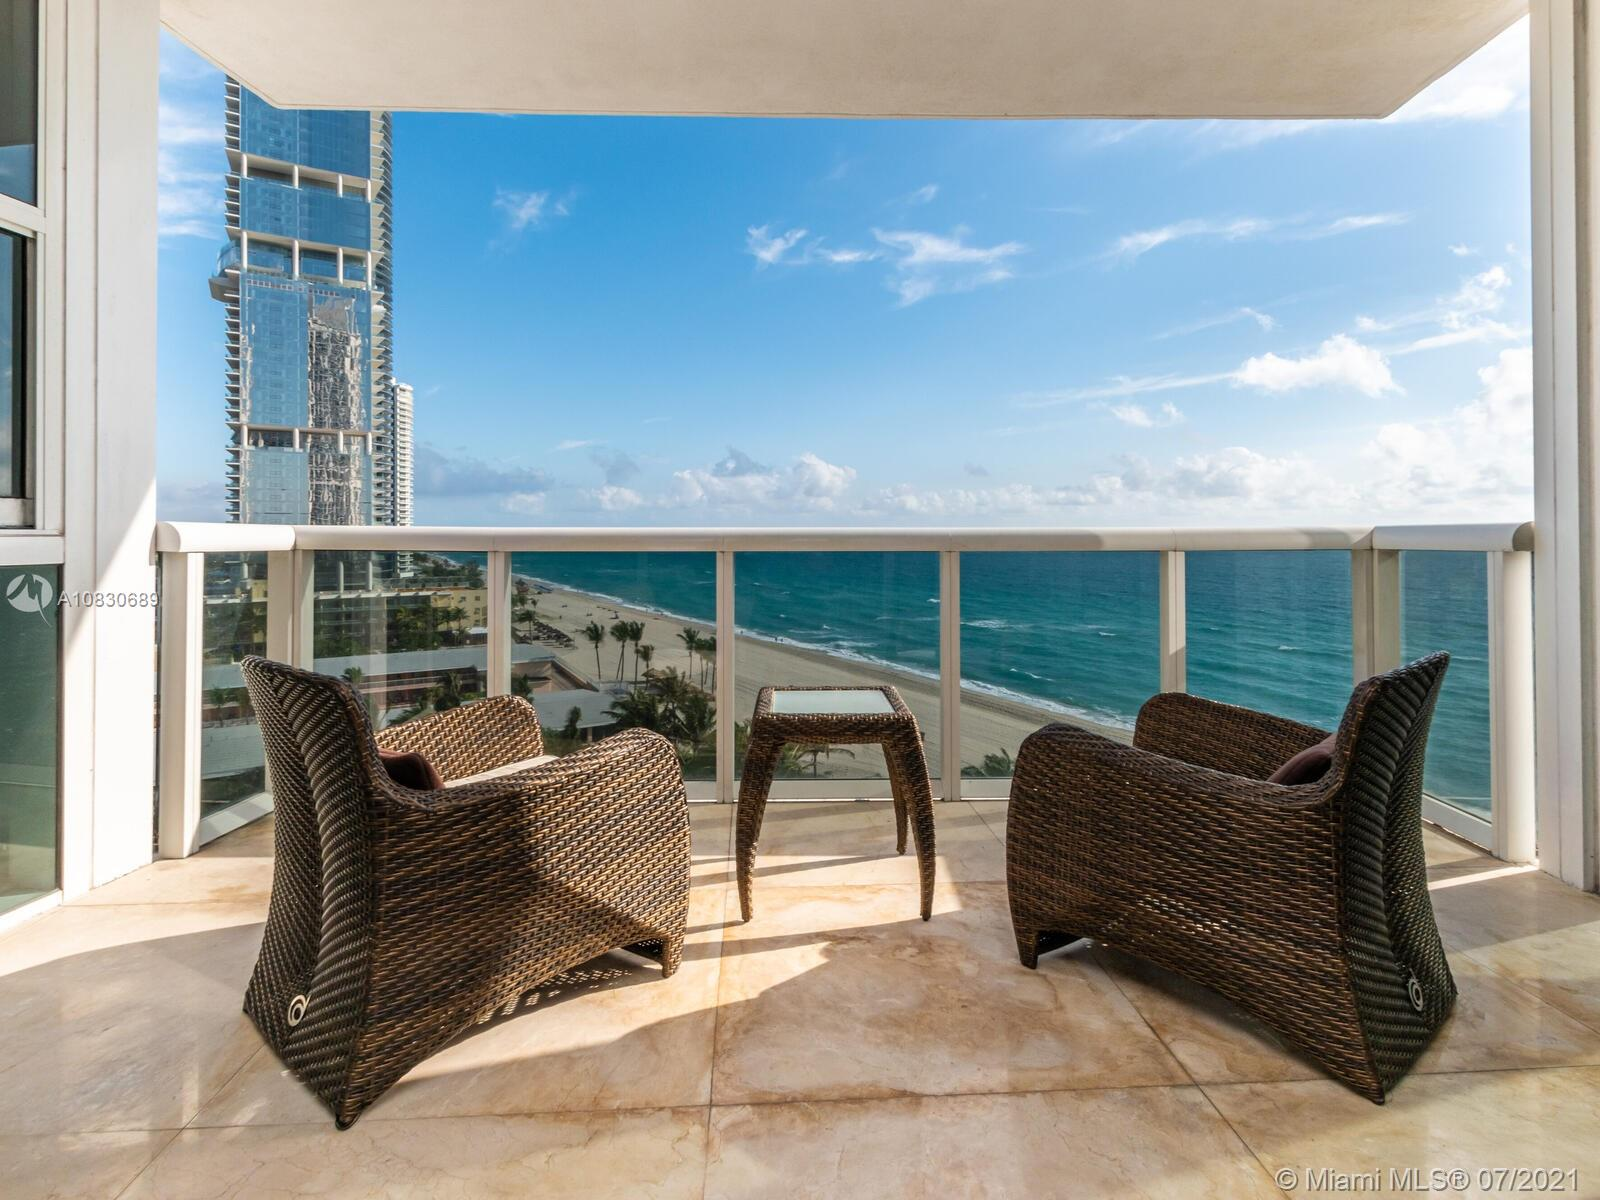 Beautiful Unit 3 Bedroom with 3/1 Bathroom (is now rented march from 25/2021 to march 24/2022 )and state of the amazing amenities includes Tennis -Pool -Gated entrance- concierge services- Location across shops and restaurant. Luxury Tower in exclusive Sunny Isles Beach Community.. Private elevator entry. Fabulous amenities including beach and pool service, rooftop jacuzzi, spa, gym , cafe , tennis courts and valet. Closet Cabinetry, CookingIsland, Custom Mirrors, fire Sprinklers, Pantry Parking, Detector, wall over, washer, high impact door, open balcony, activity room exercise room, guard at gate, child play area,sauna, spa/hot tub.